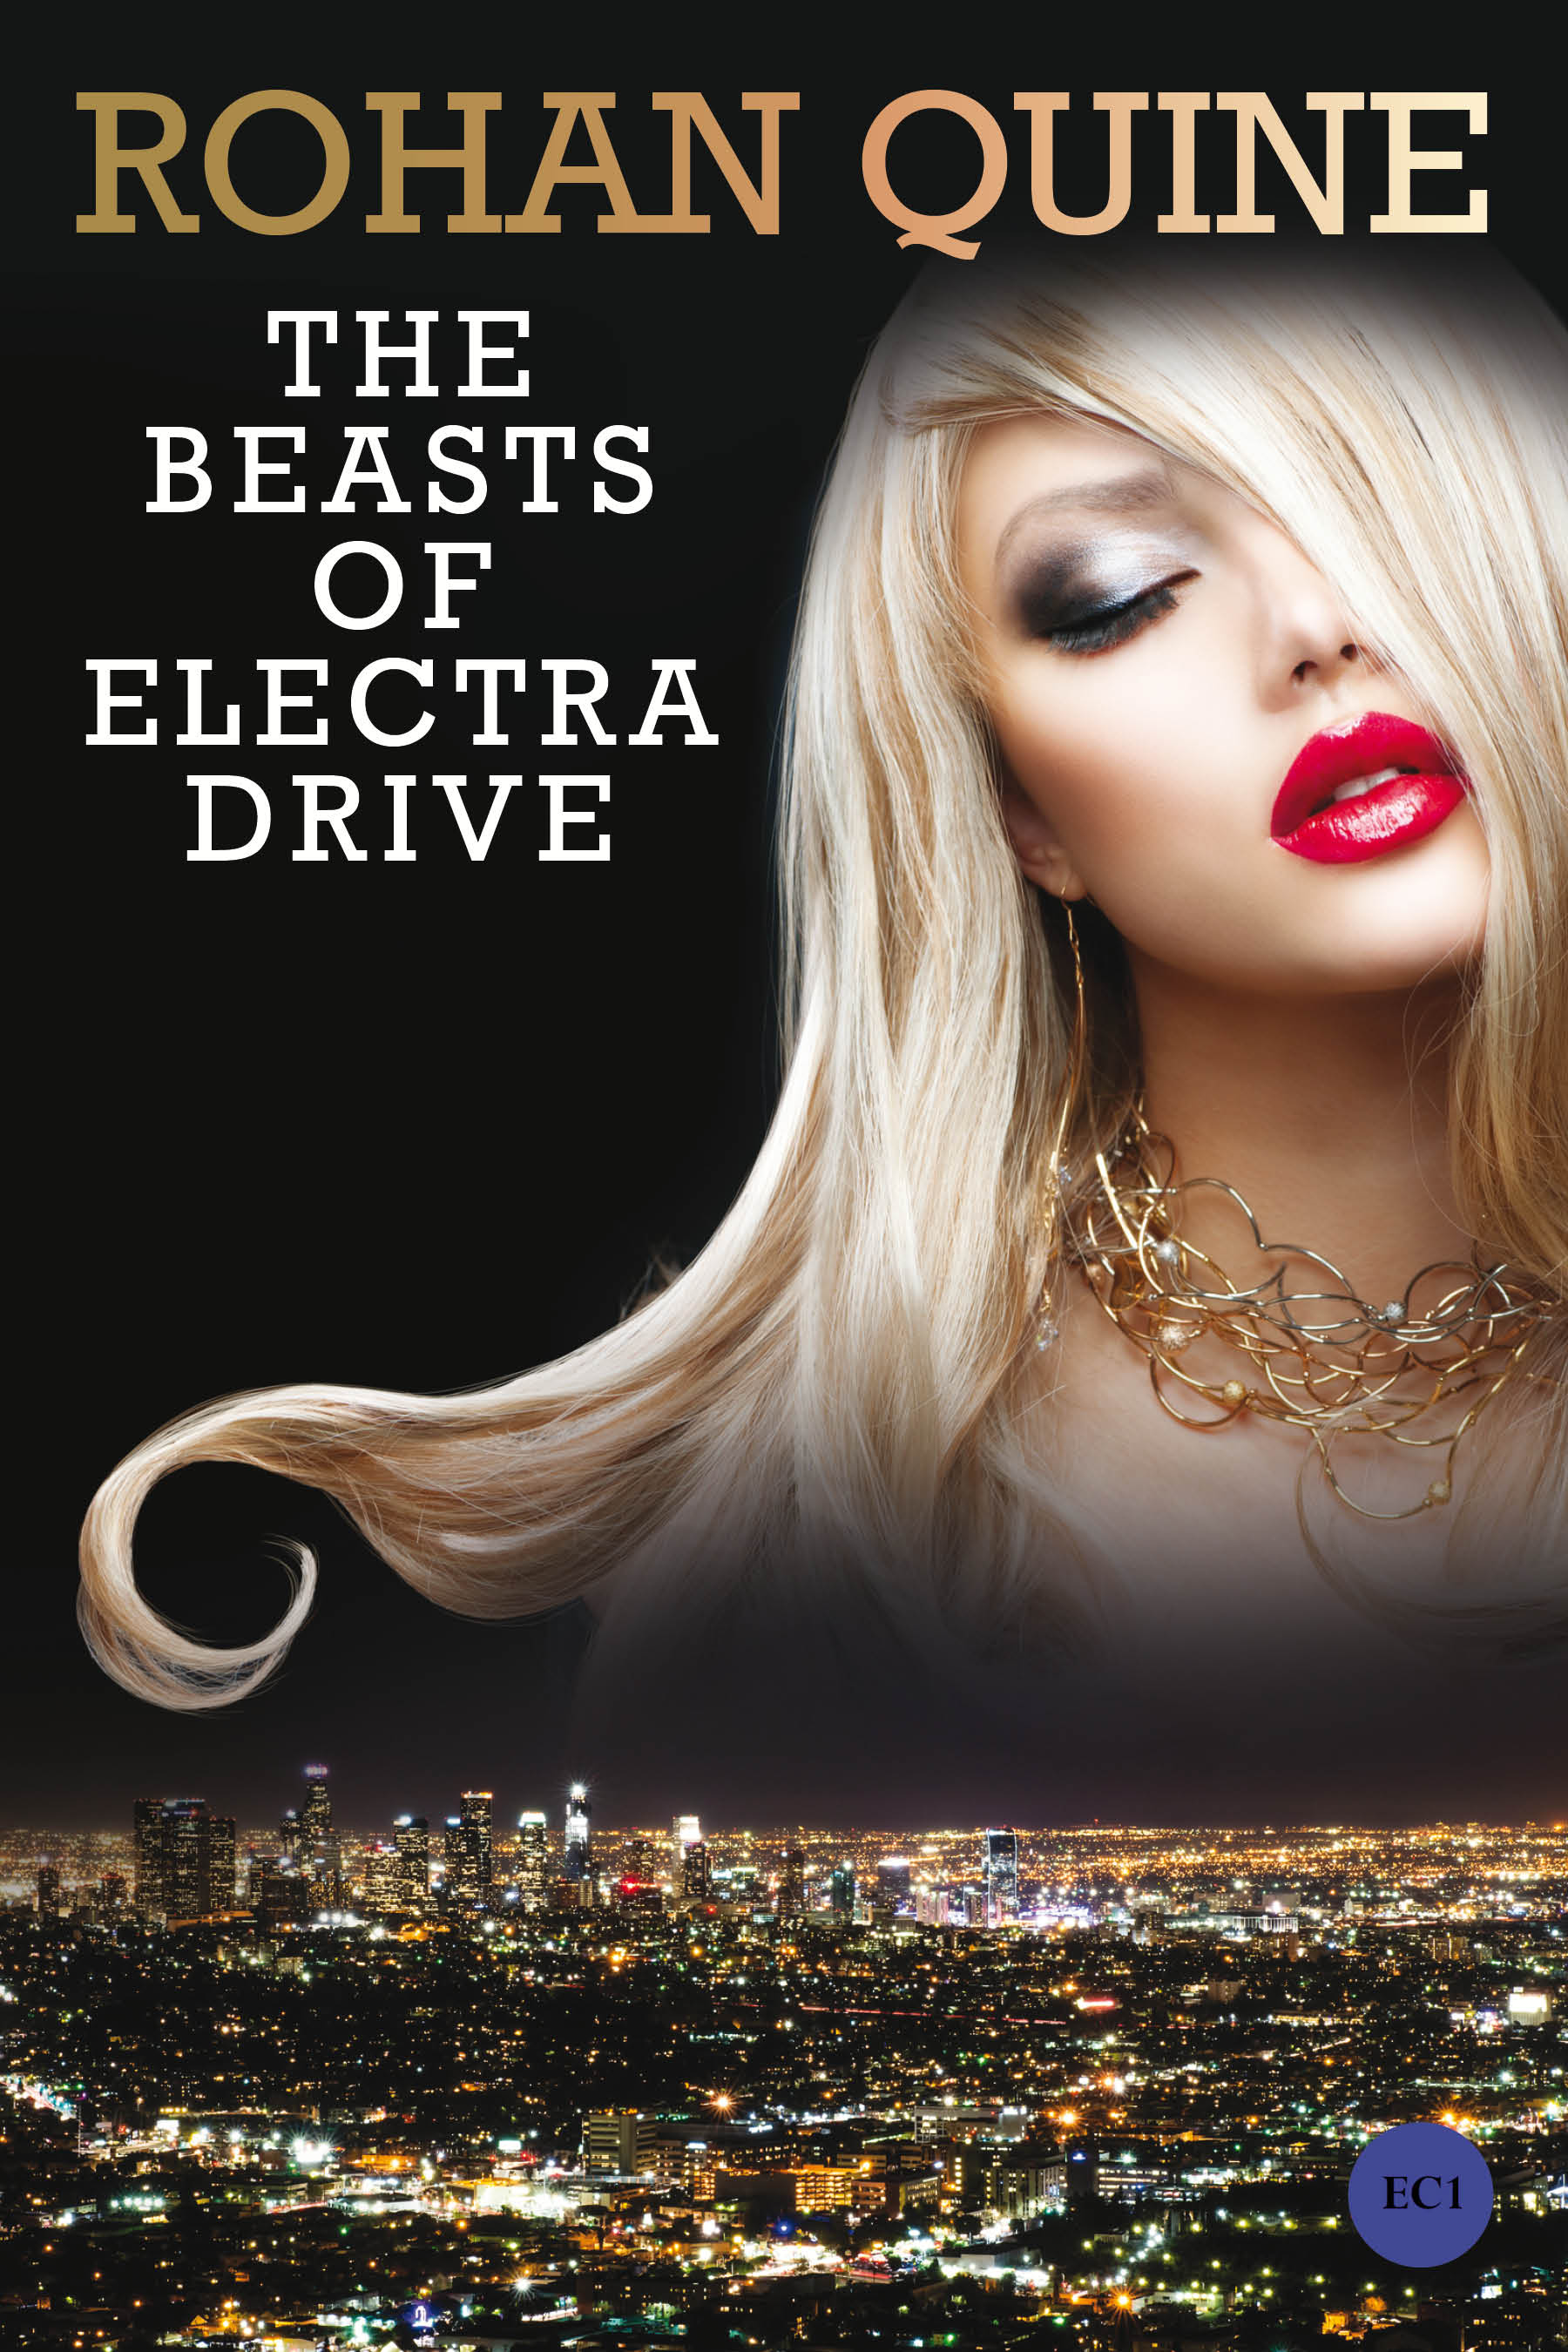 THE BEASTS OF ELECTRA DRIVE (novel) by Rohan Quine - paperback cover (literary fiction, magical realism, horror)